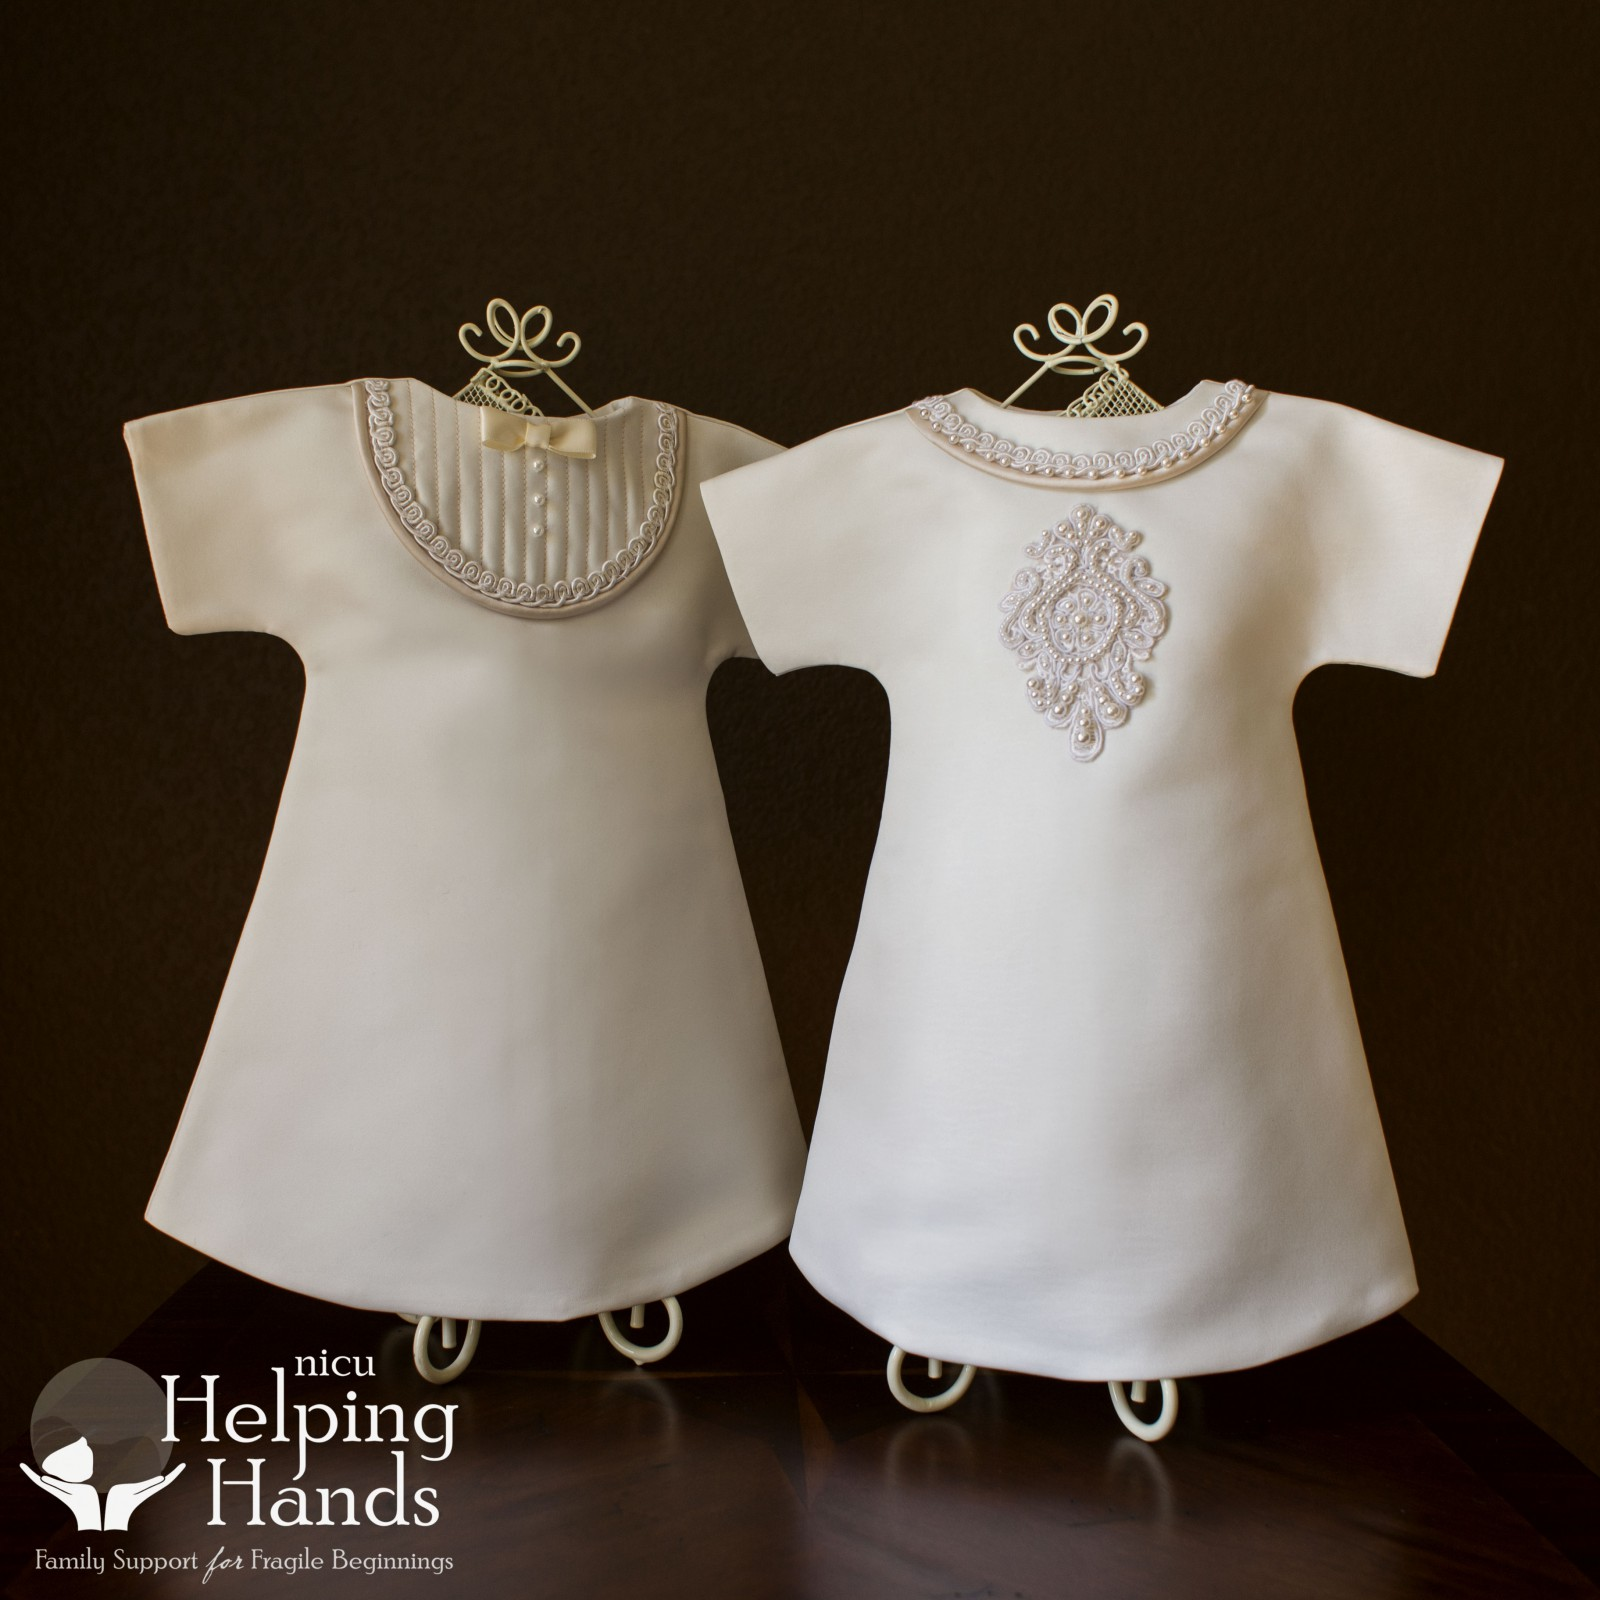 The Angel Gown® Program • NICU Helping Hands